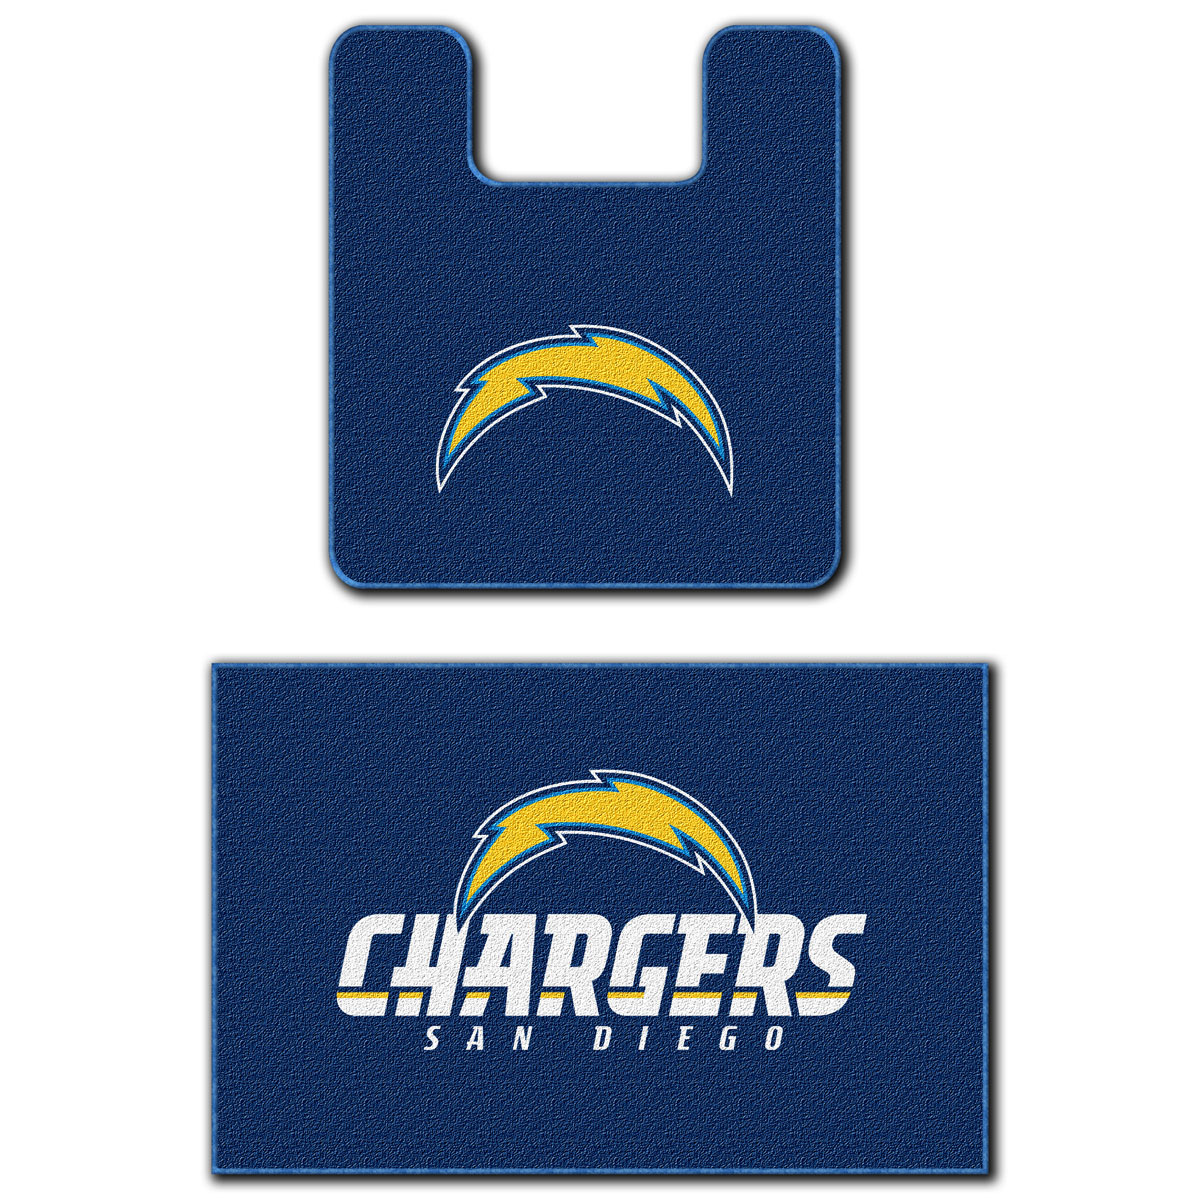 NFL San Diego Chargers Bath Mat Set Football Bathroom Rugs at Sears.com